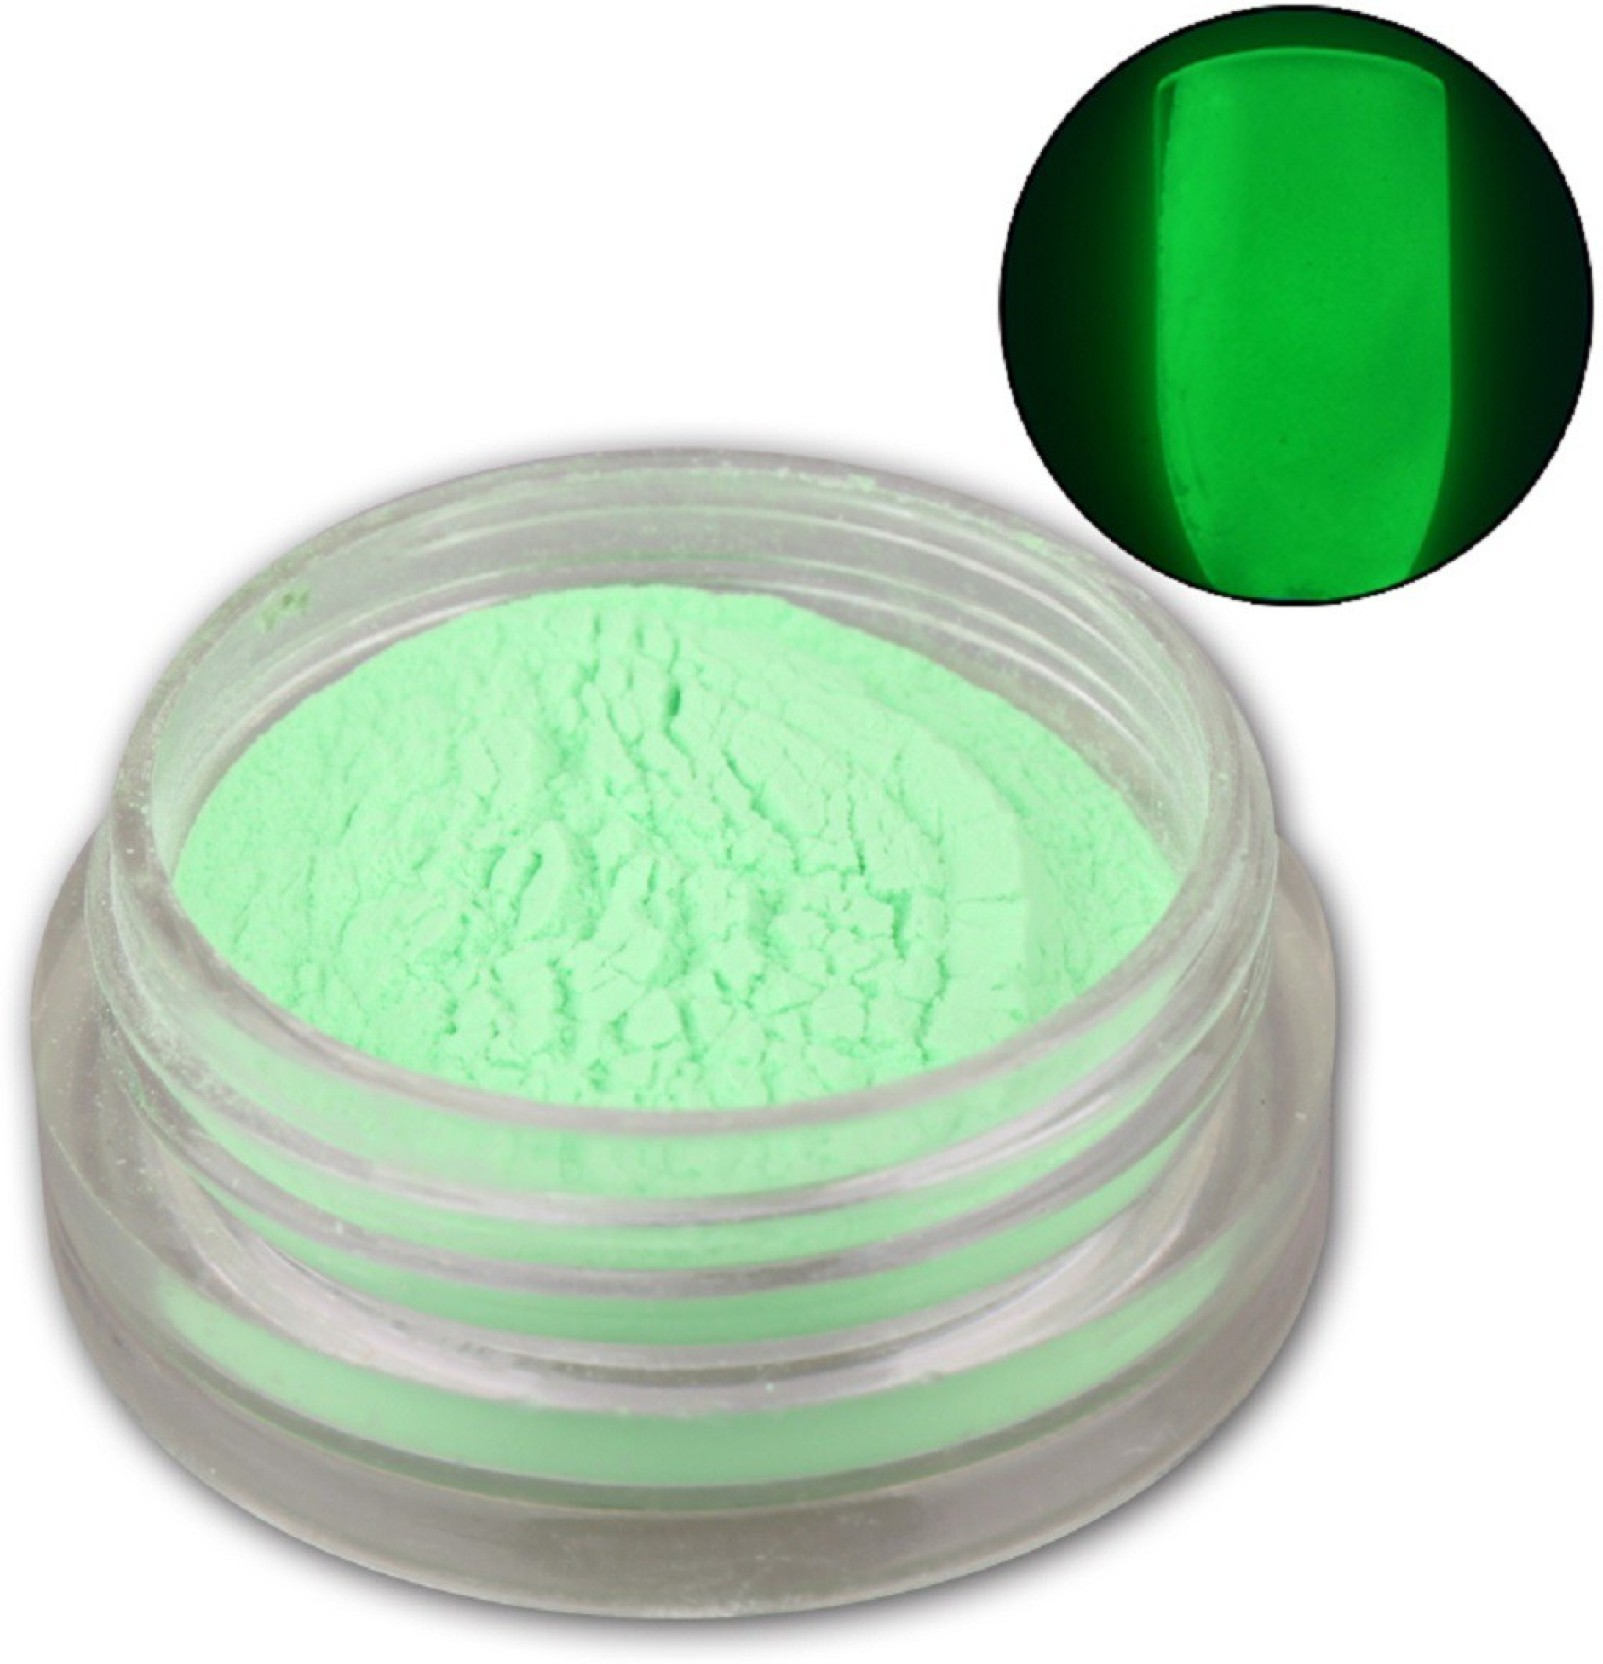 Born Pretty 1 Box Neon Phosphor Powder Nail Glitter Powder Green Color Dust  Luminous Pigment Fluorescent Powder Nail Glitters Glow in the Dark  1 Green  ... 66071f055bf4